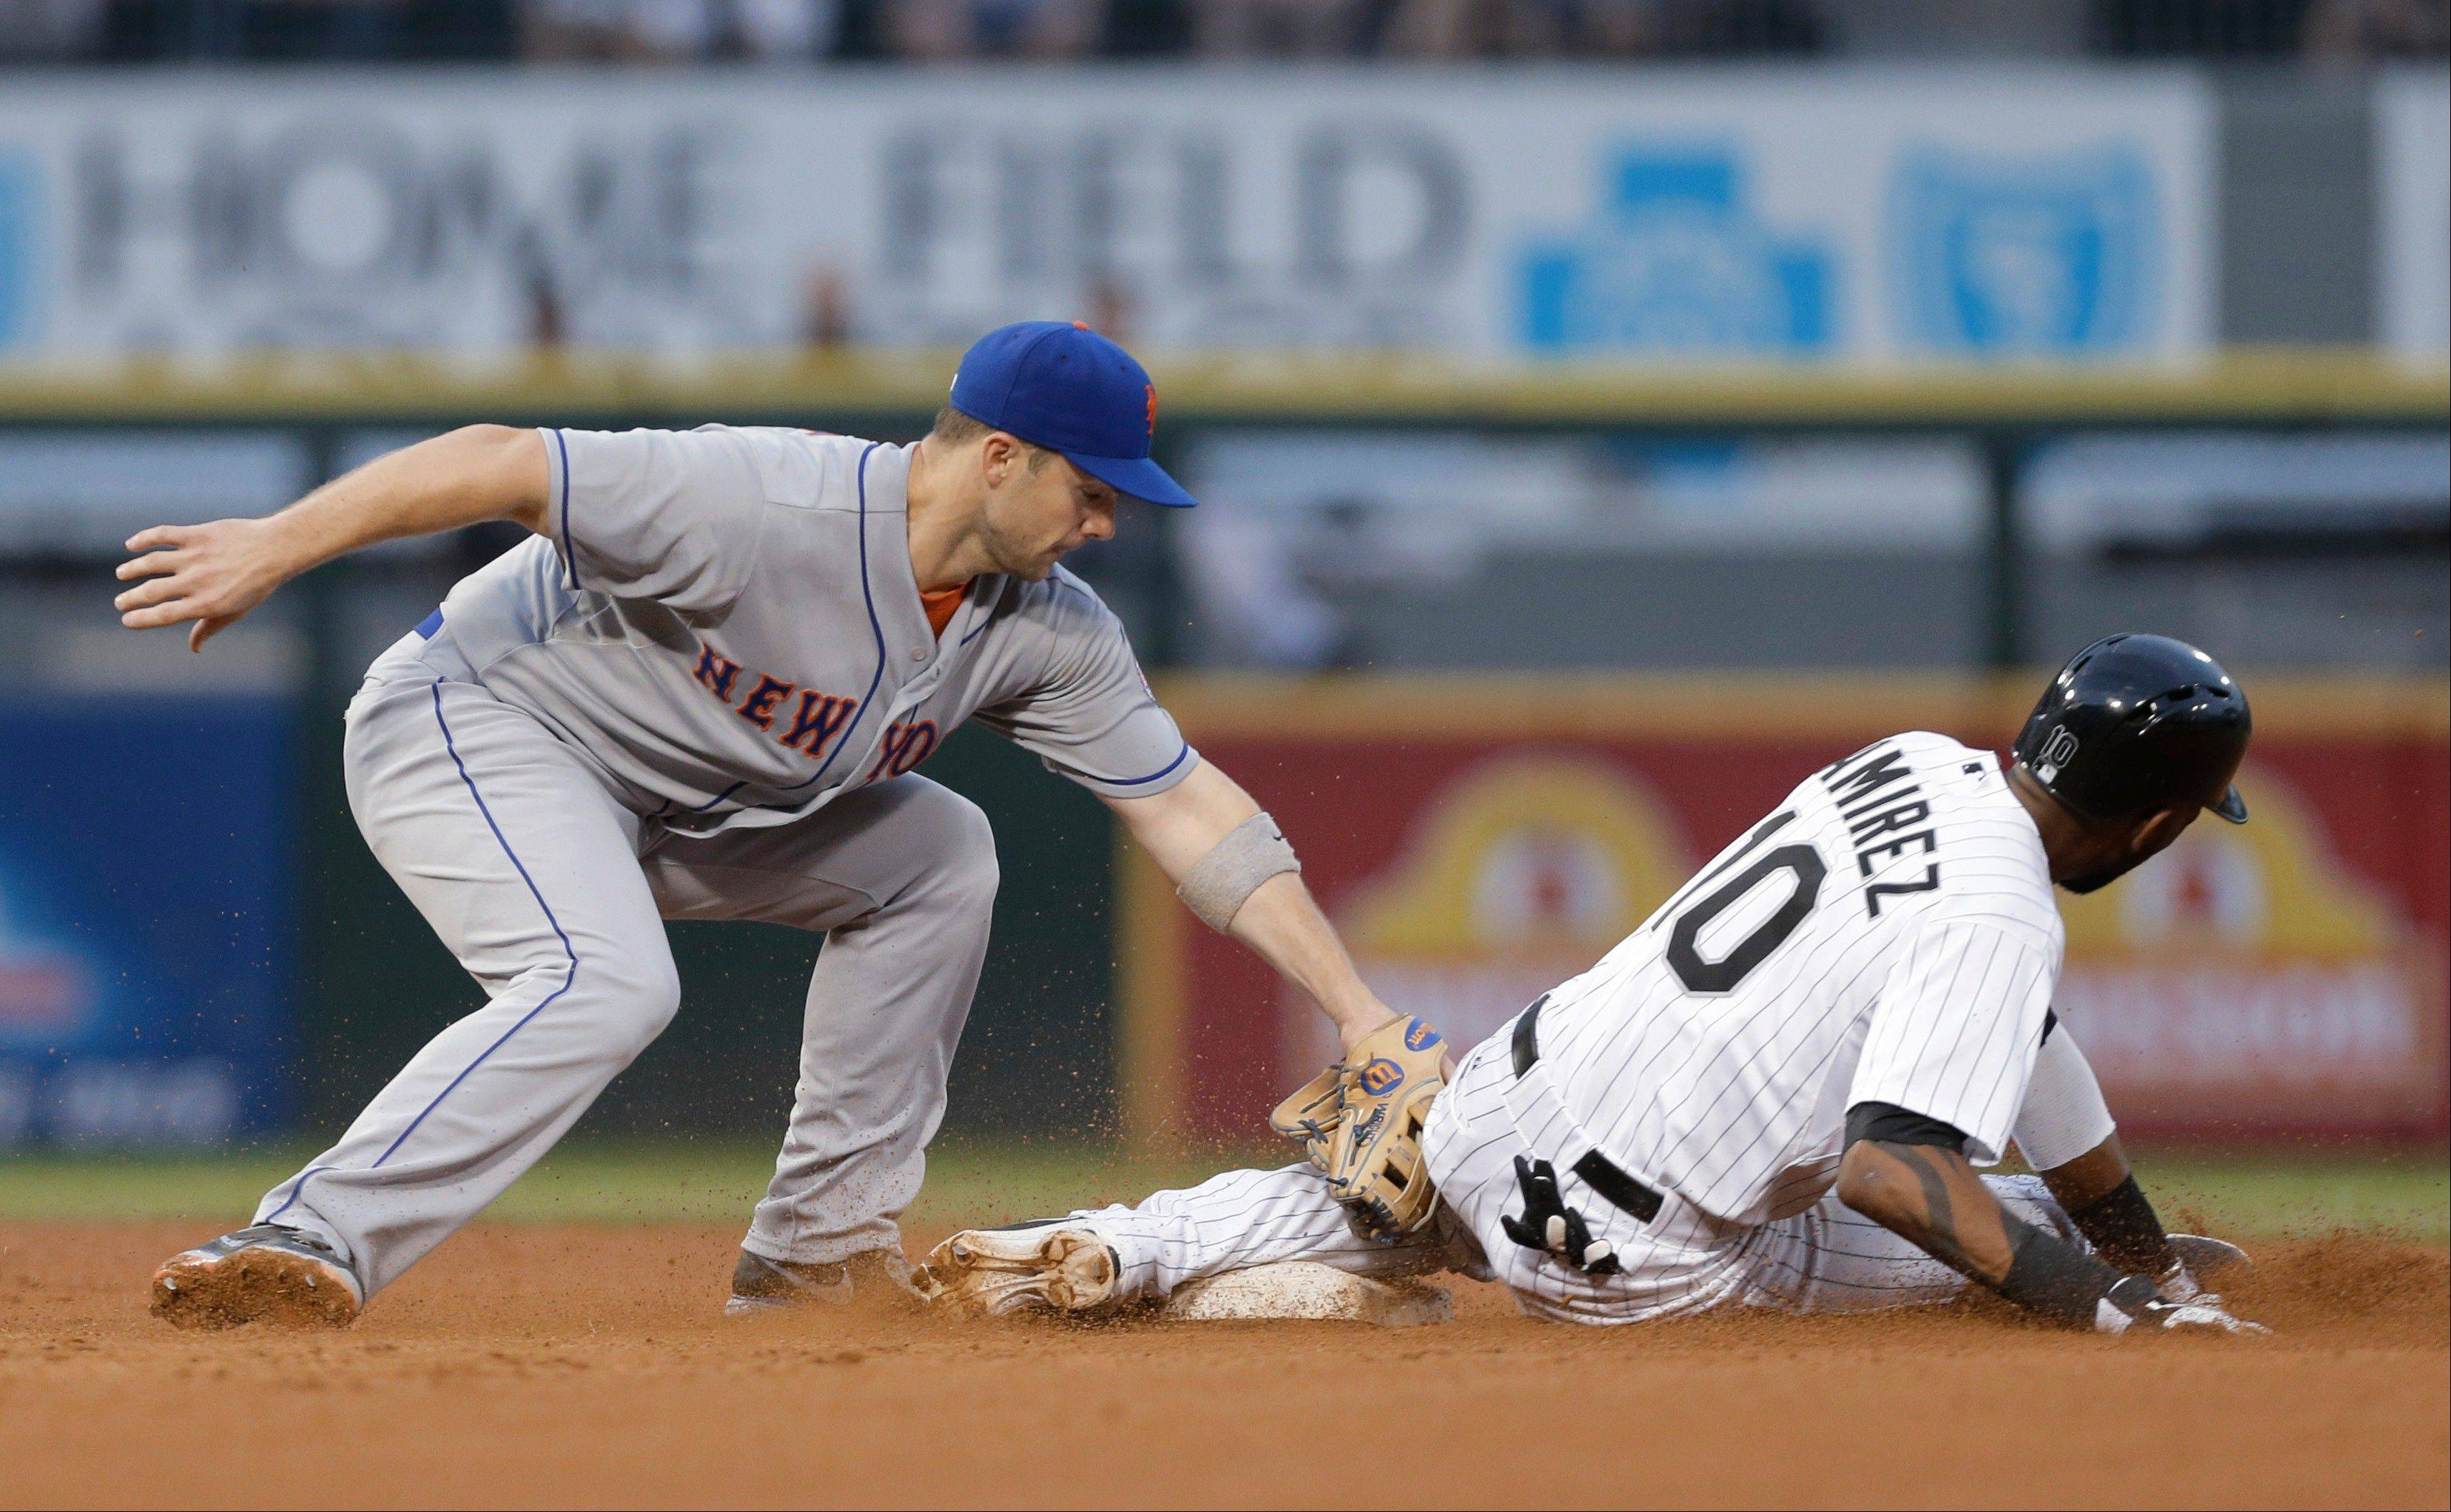 The White Sox� Alexei Ramirez, right, steals second as New York Mets third baseman David Wright applies a late tag during the fourth inning of an interleague baseball game on Wednesday, June 26, 2013, in Chicago.